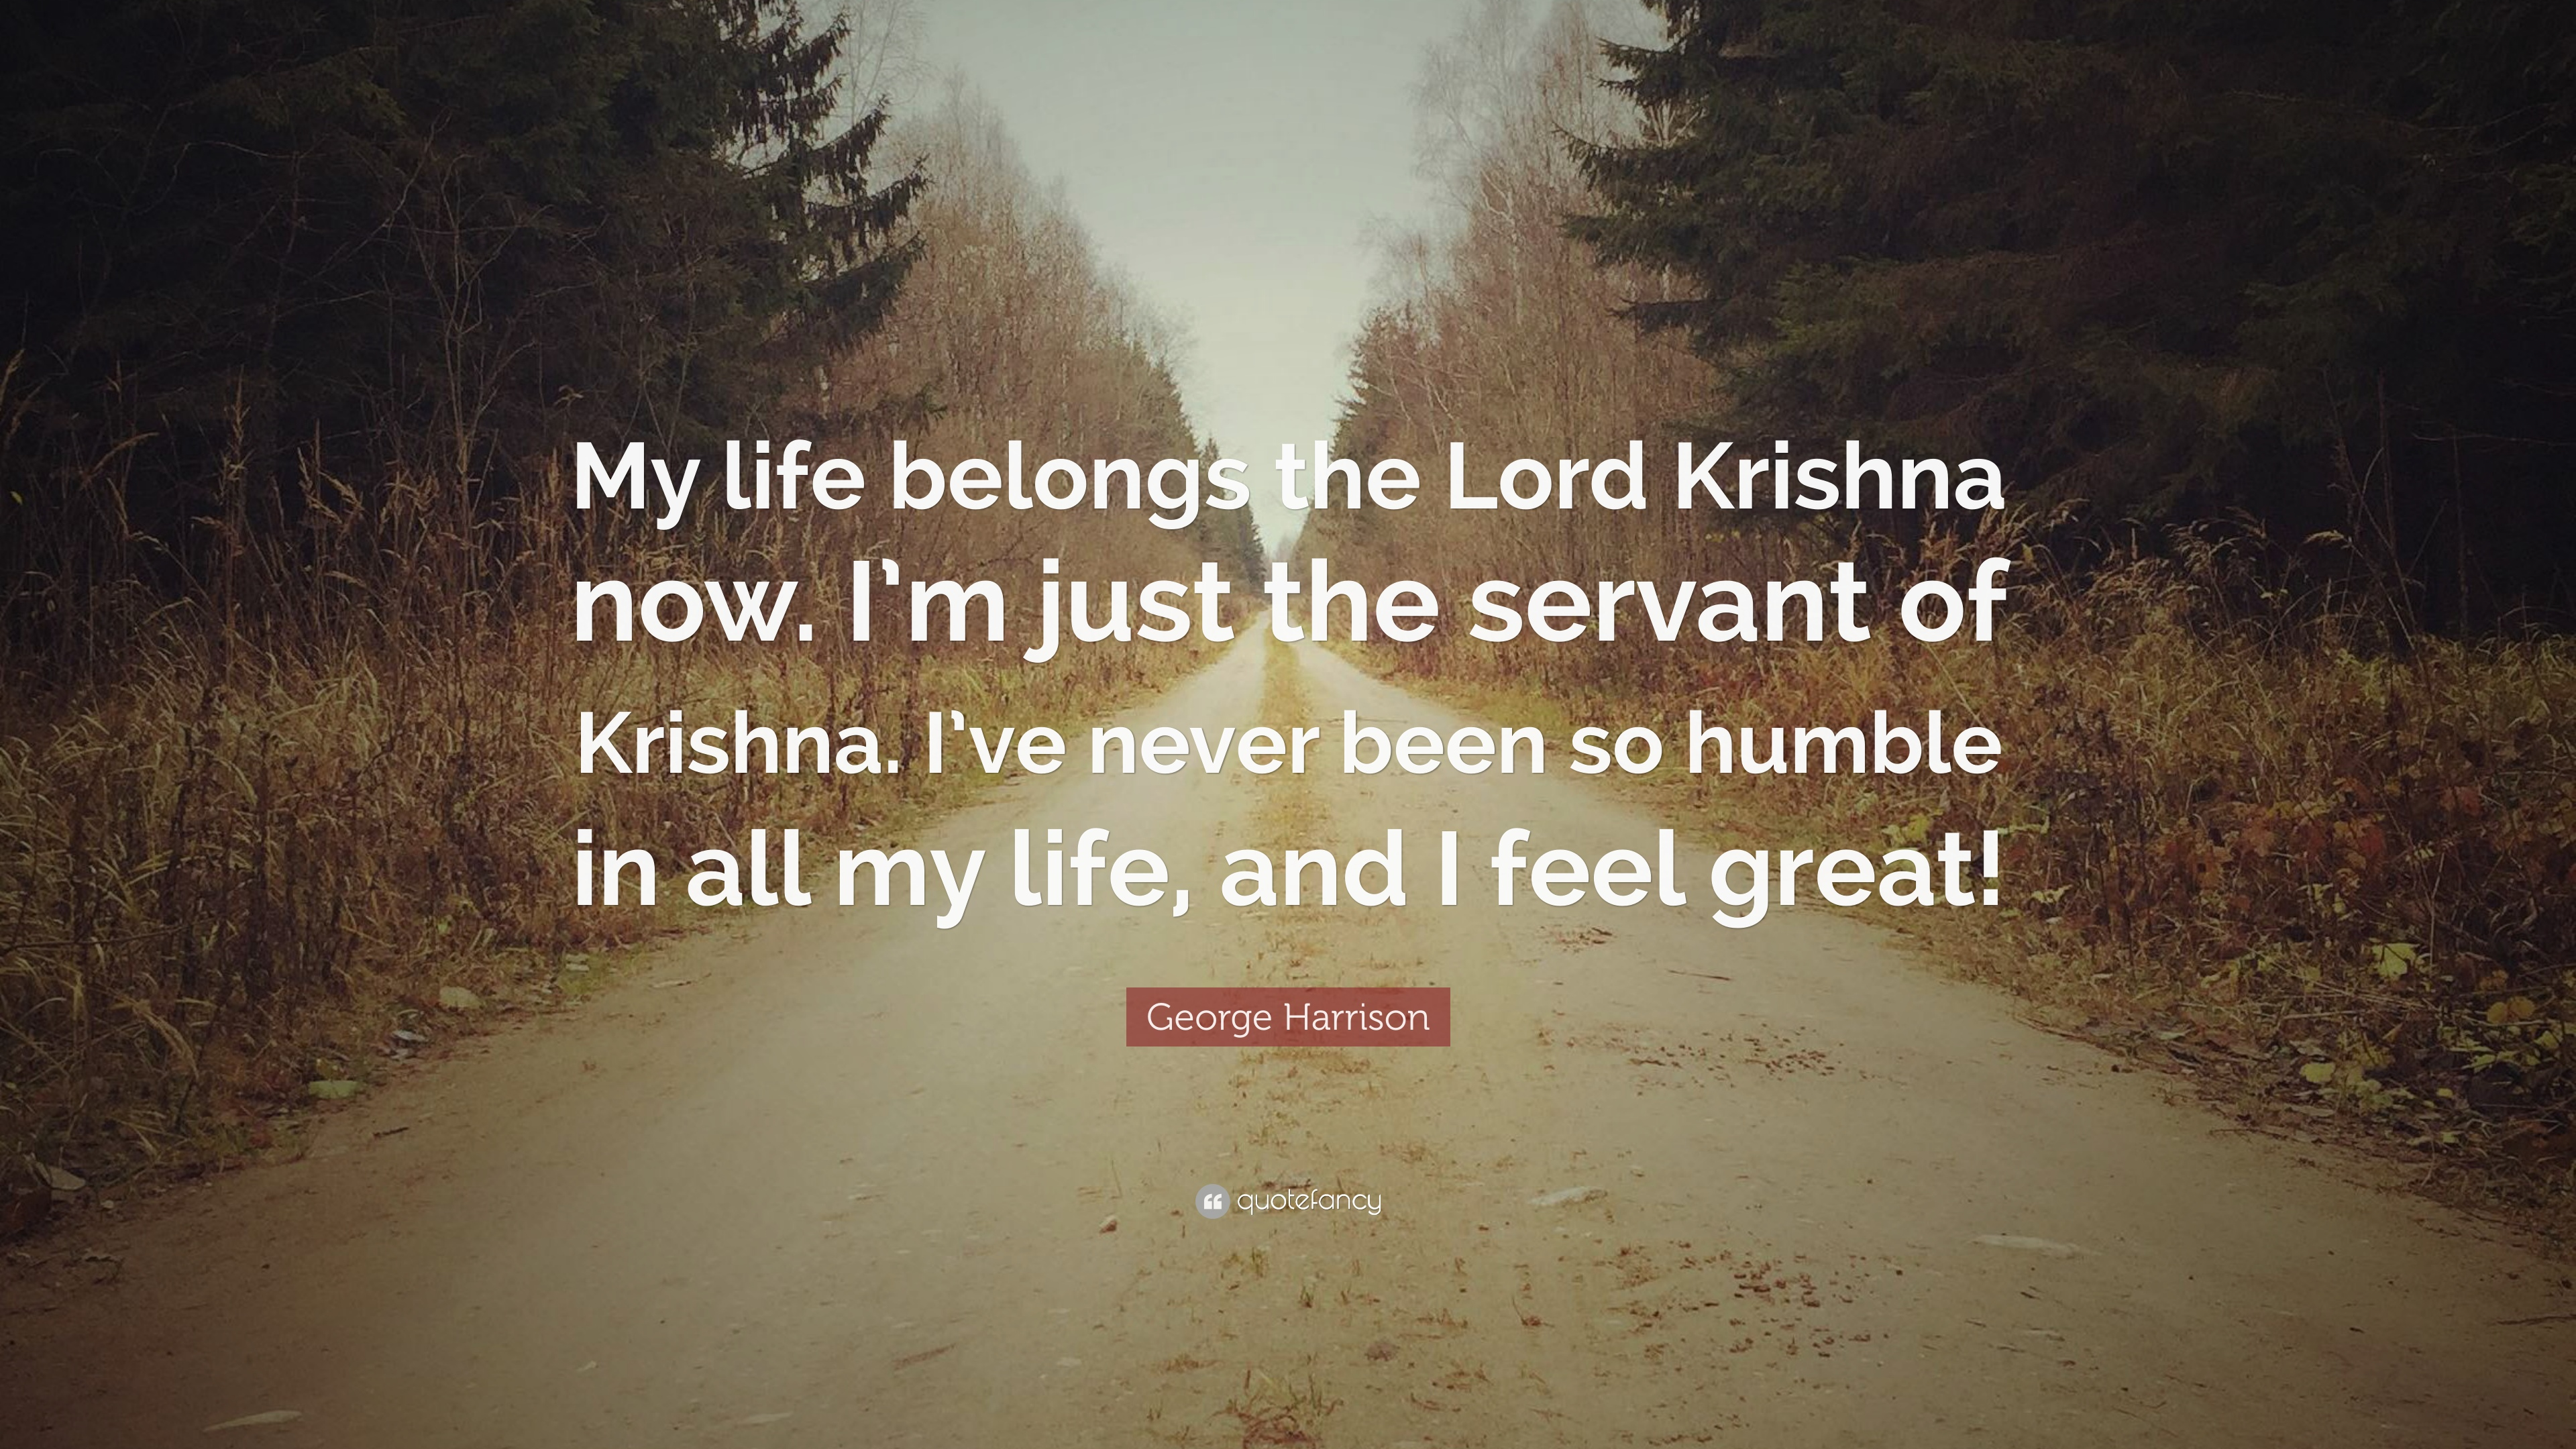 "Lord Krishna Quotes Amazing George Harrison Quote ""My Life Belongs The Lord Krishna Nowi'm"